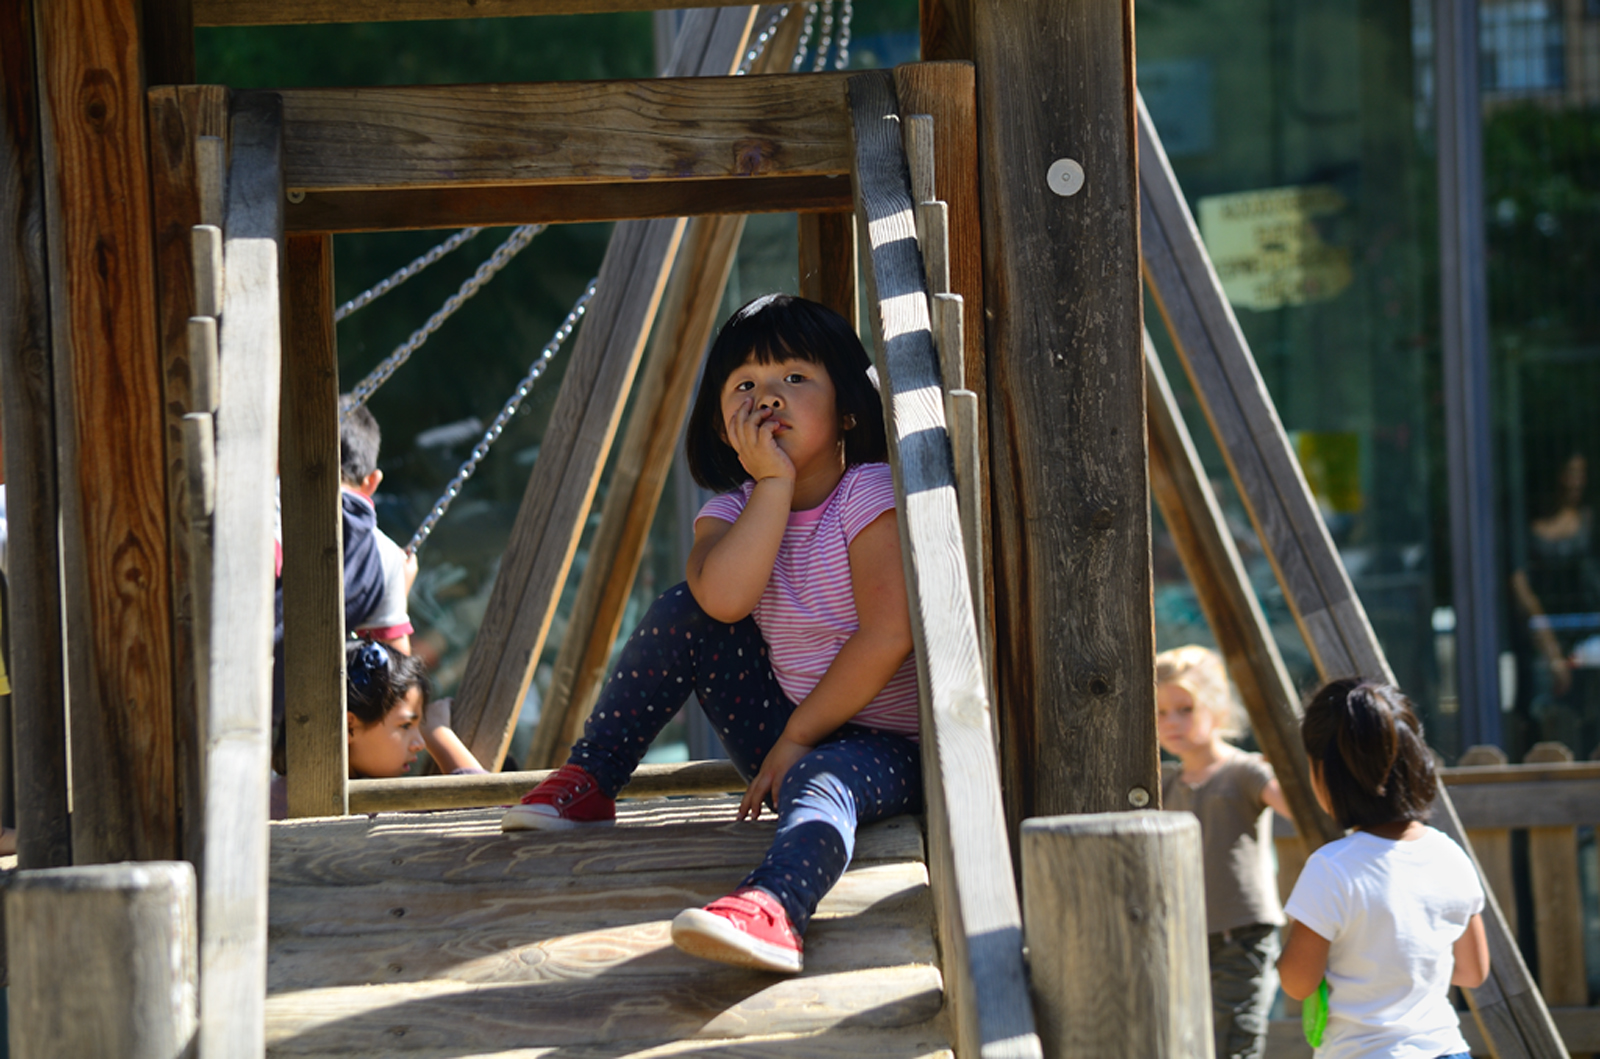 Chinese girl in wooden playground framework